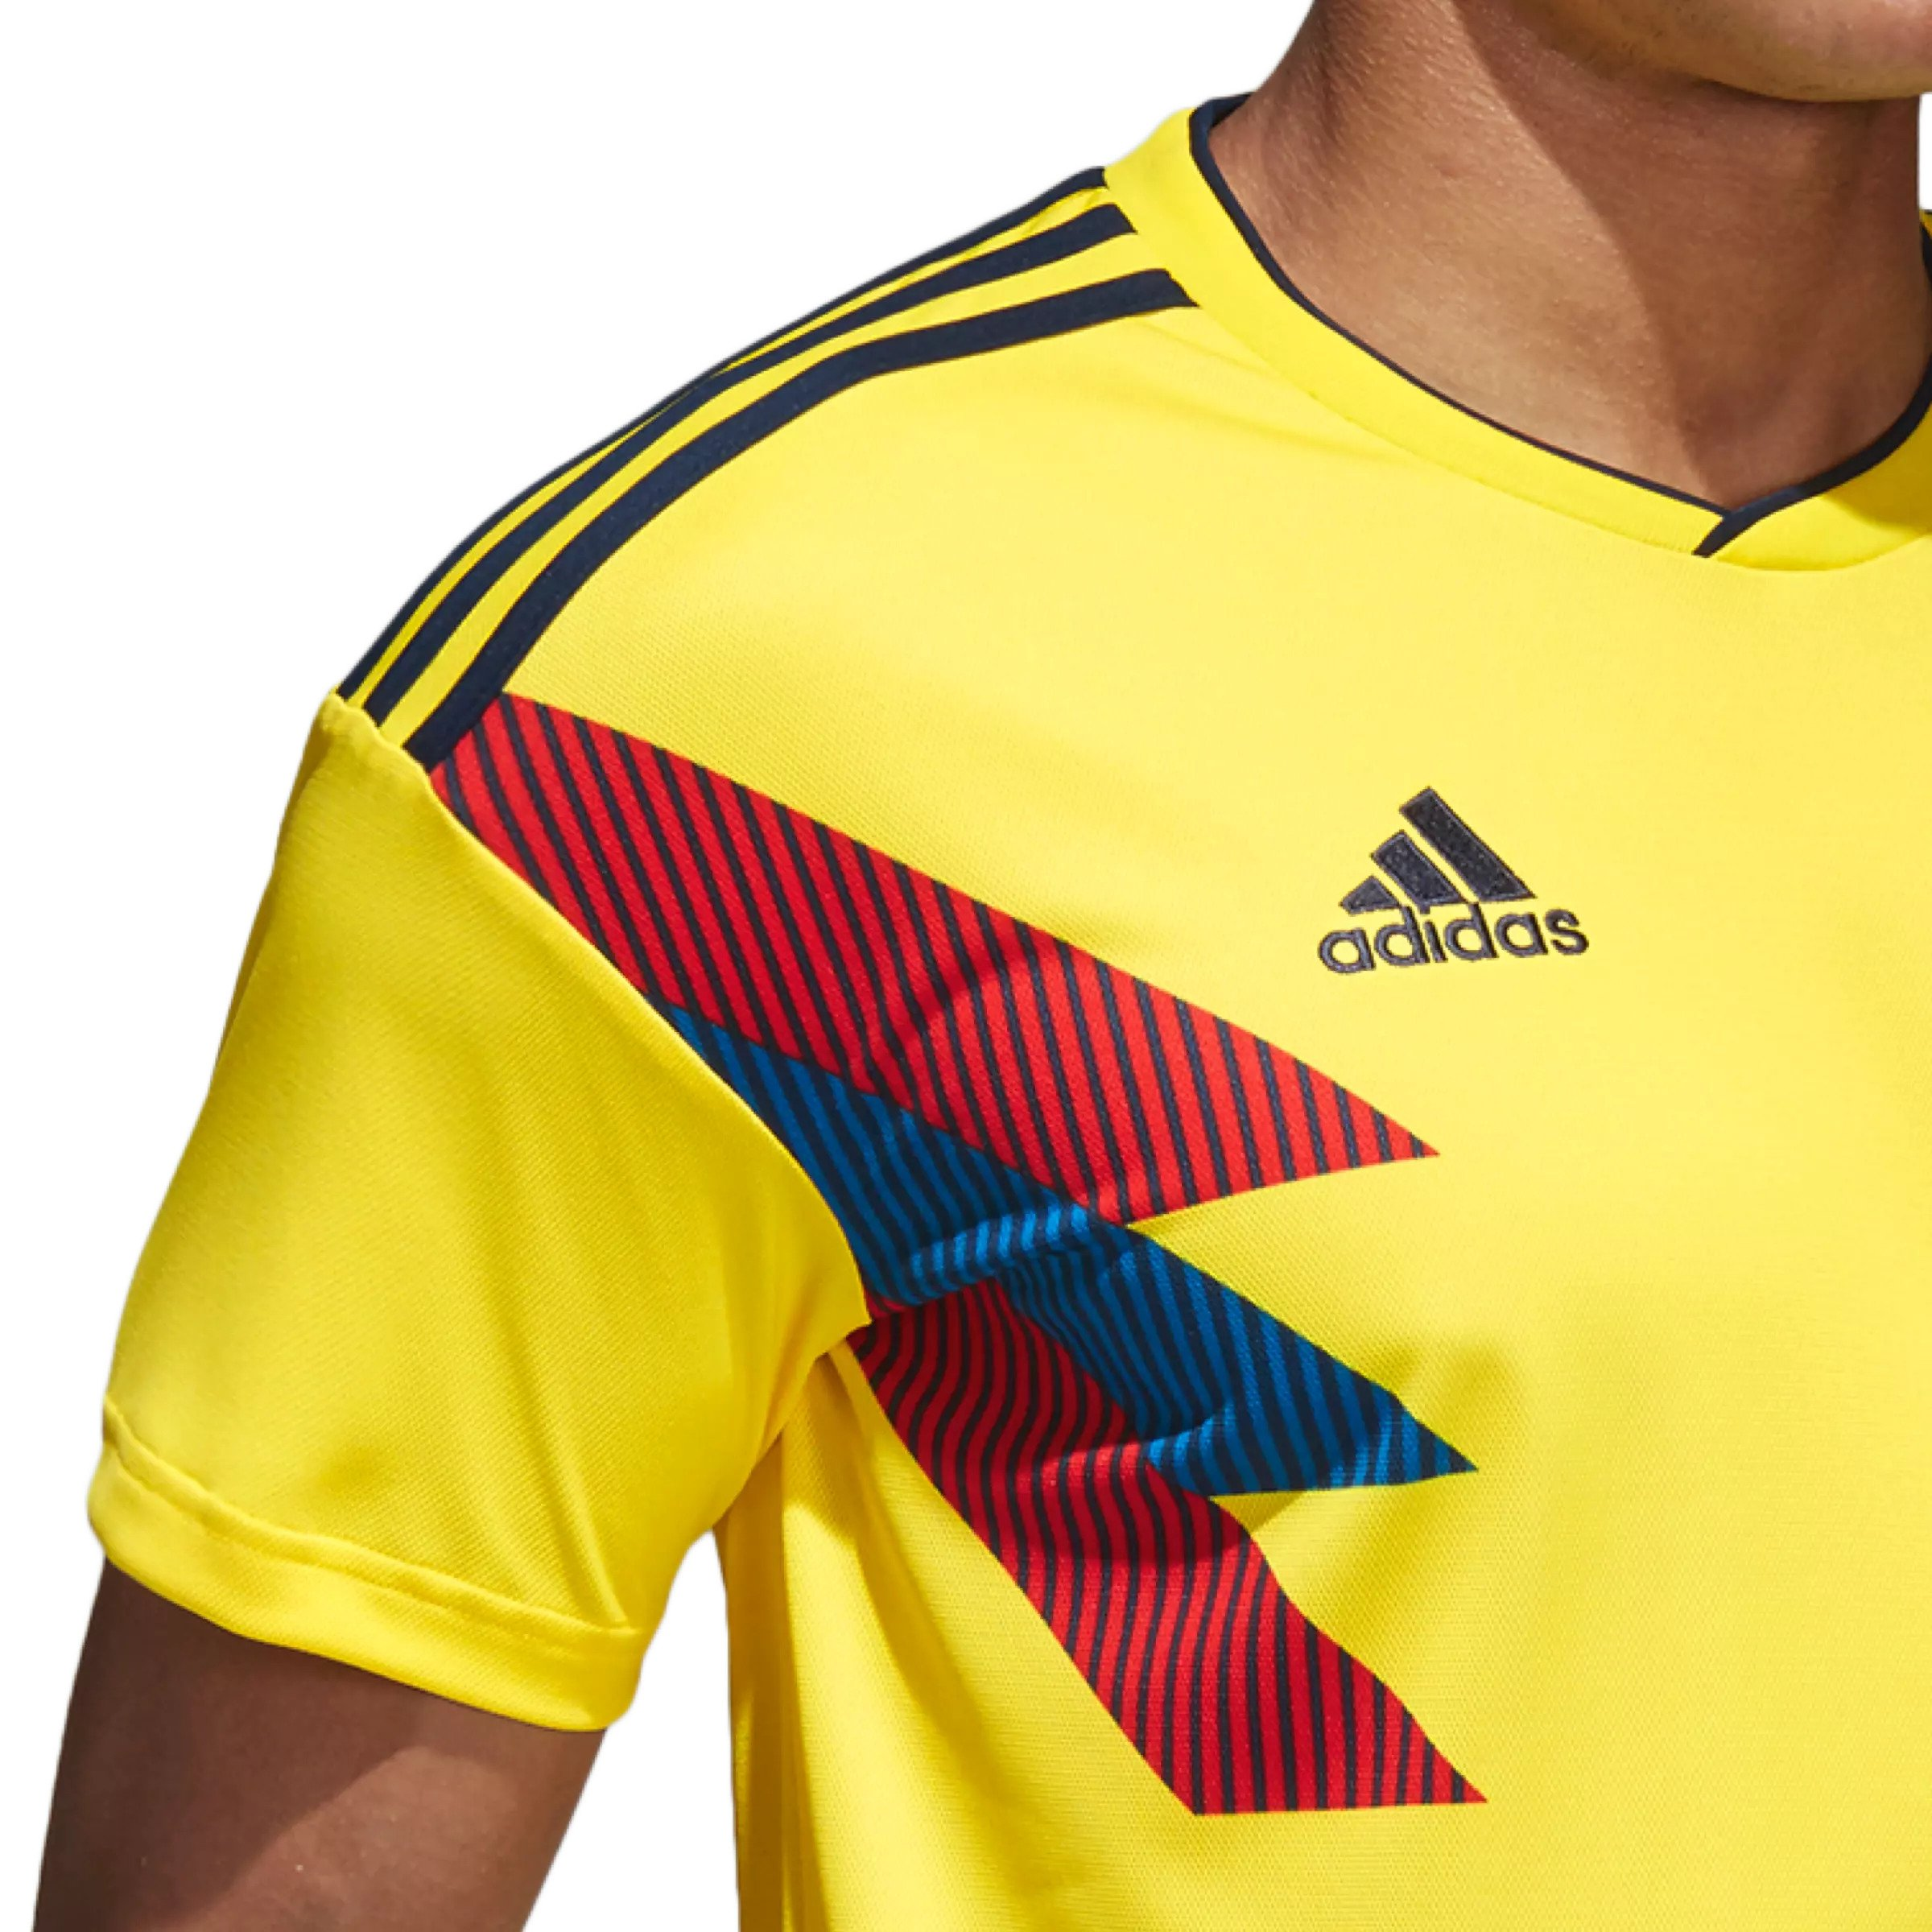 de483daae Adidas Colombia Home Replica Soccer Jersey. click on thumbnail to zoom